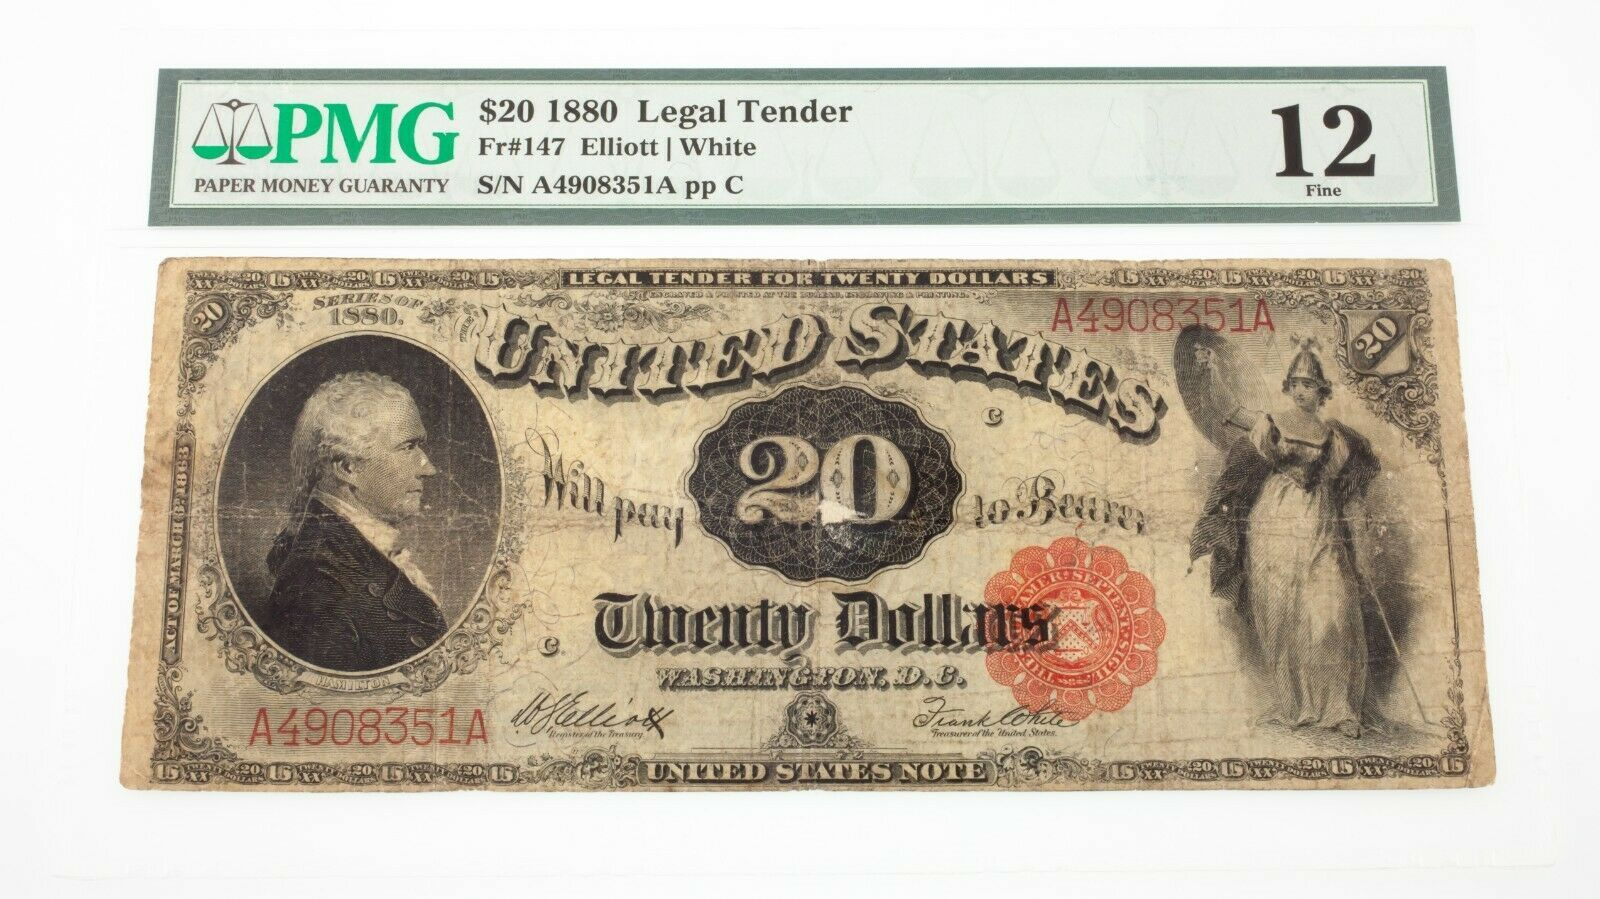 1880 $20 United States Note Fr #147 Graded by PMG as Fine 12